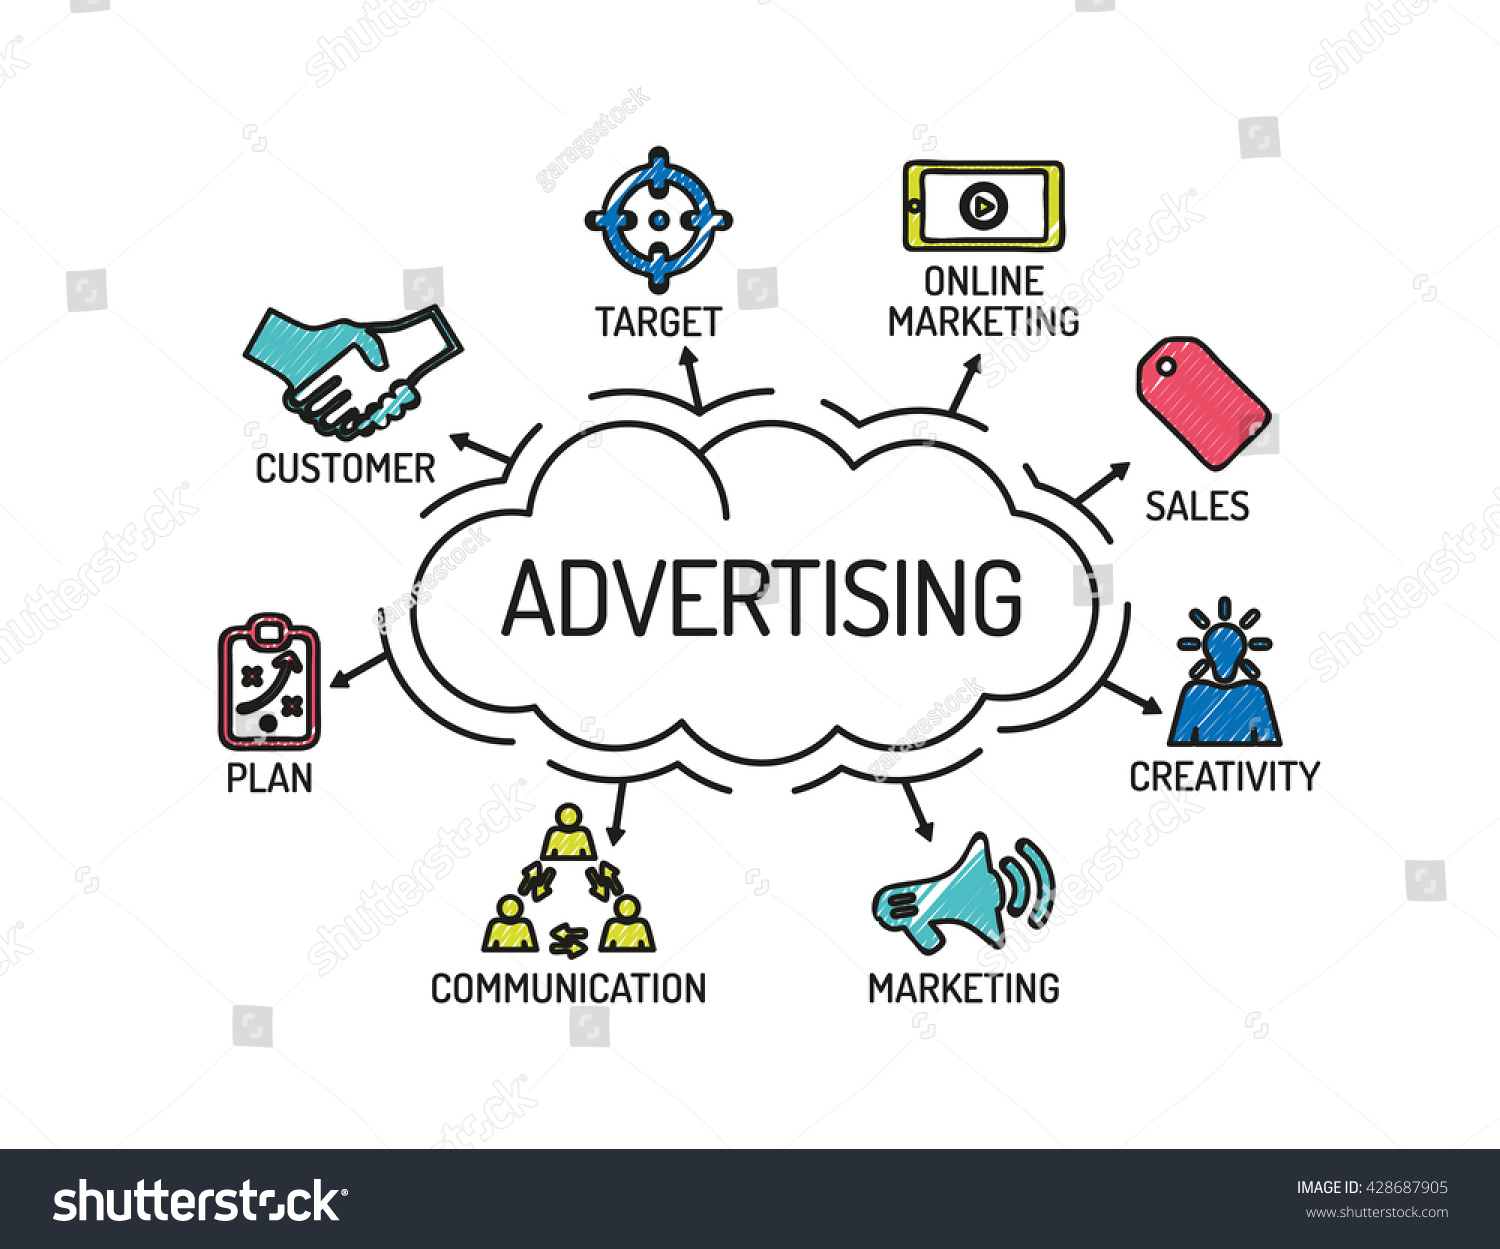 Advertising Chart Keywords Icons Sketch Stock Vector 428687905 ...